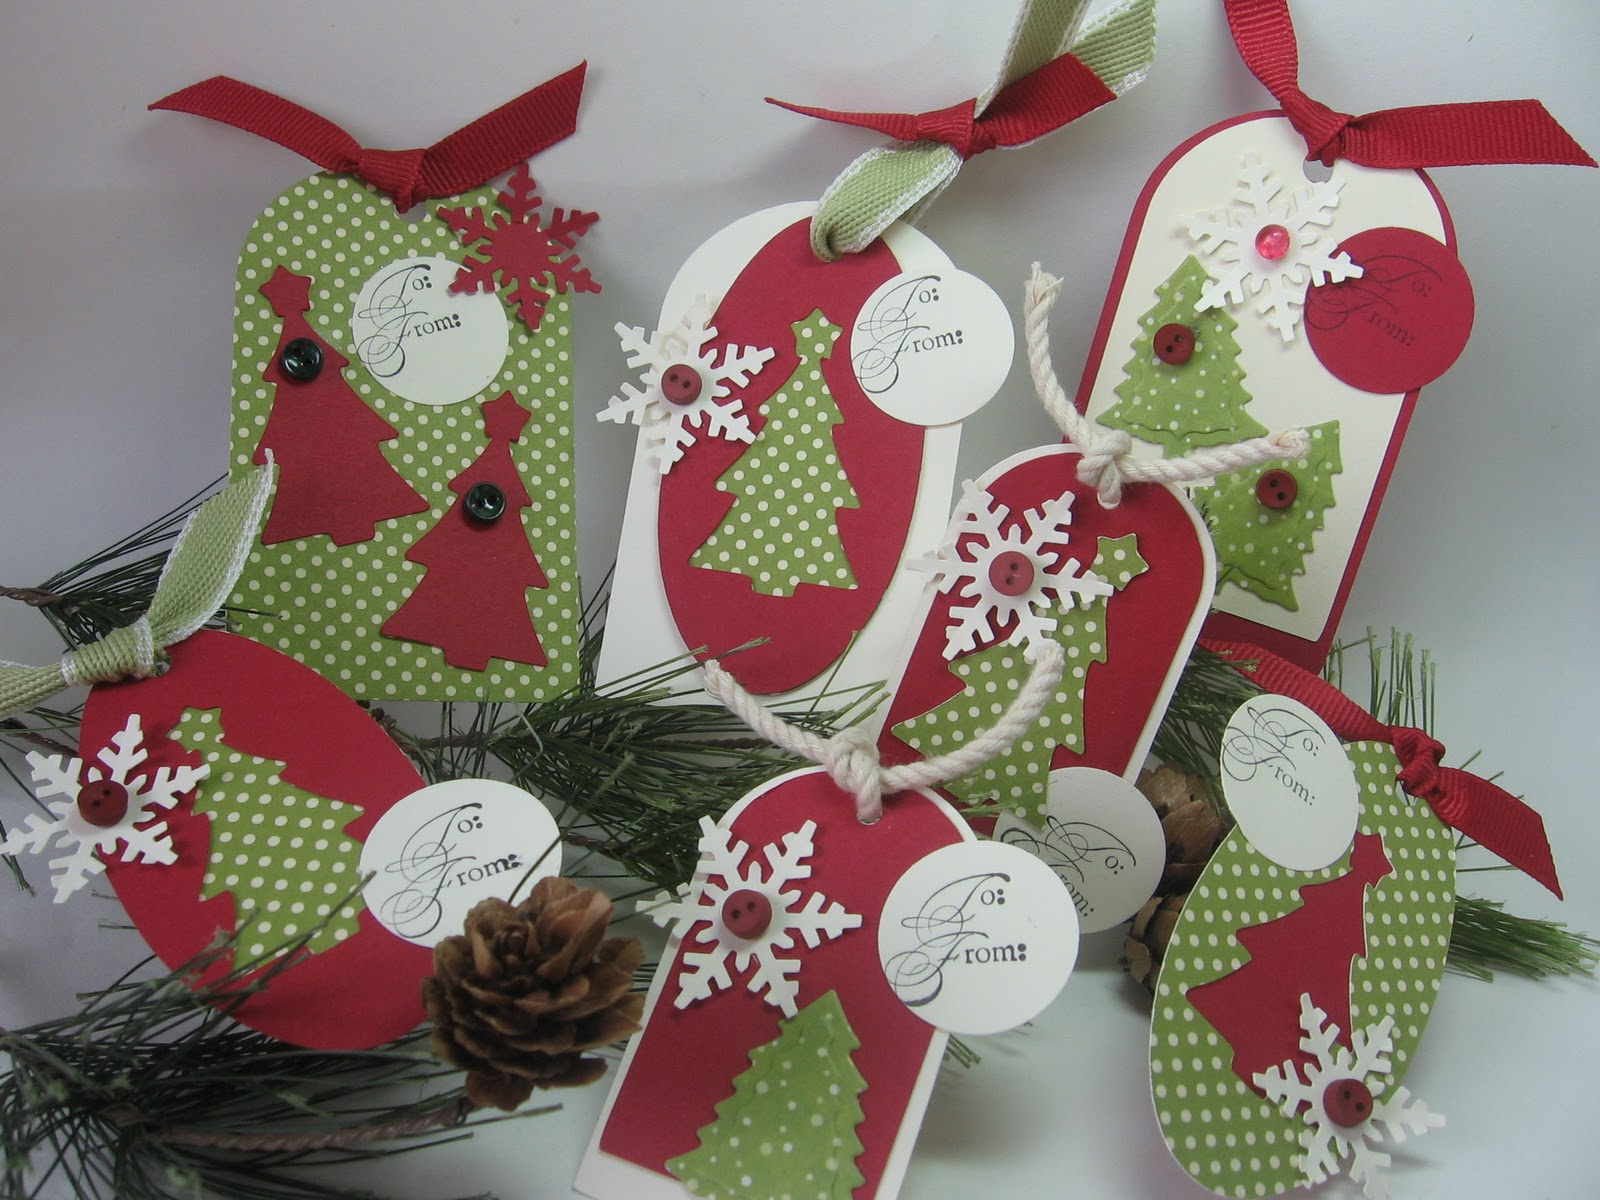 Christmas Tags: Stamping Up North With Laurie: Cricut Christmas Tree Tags